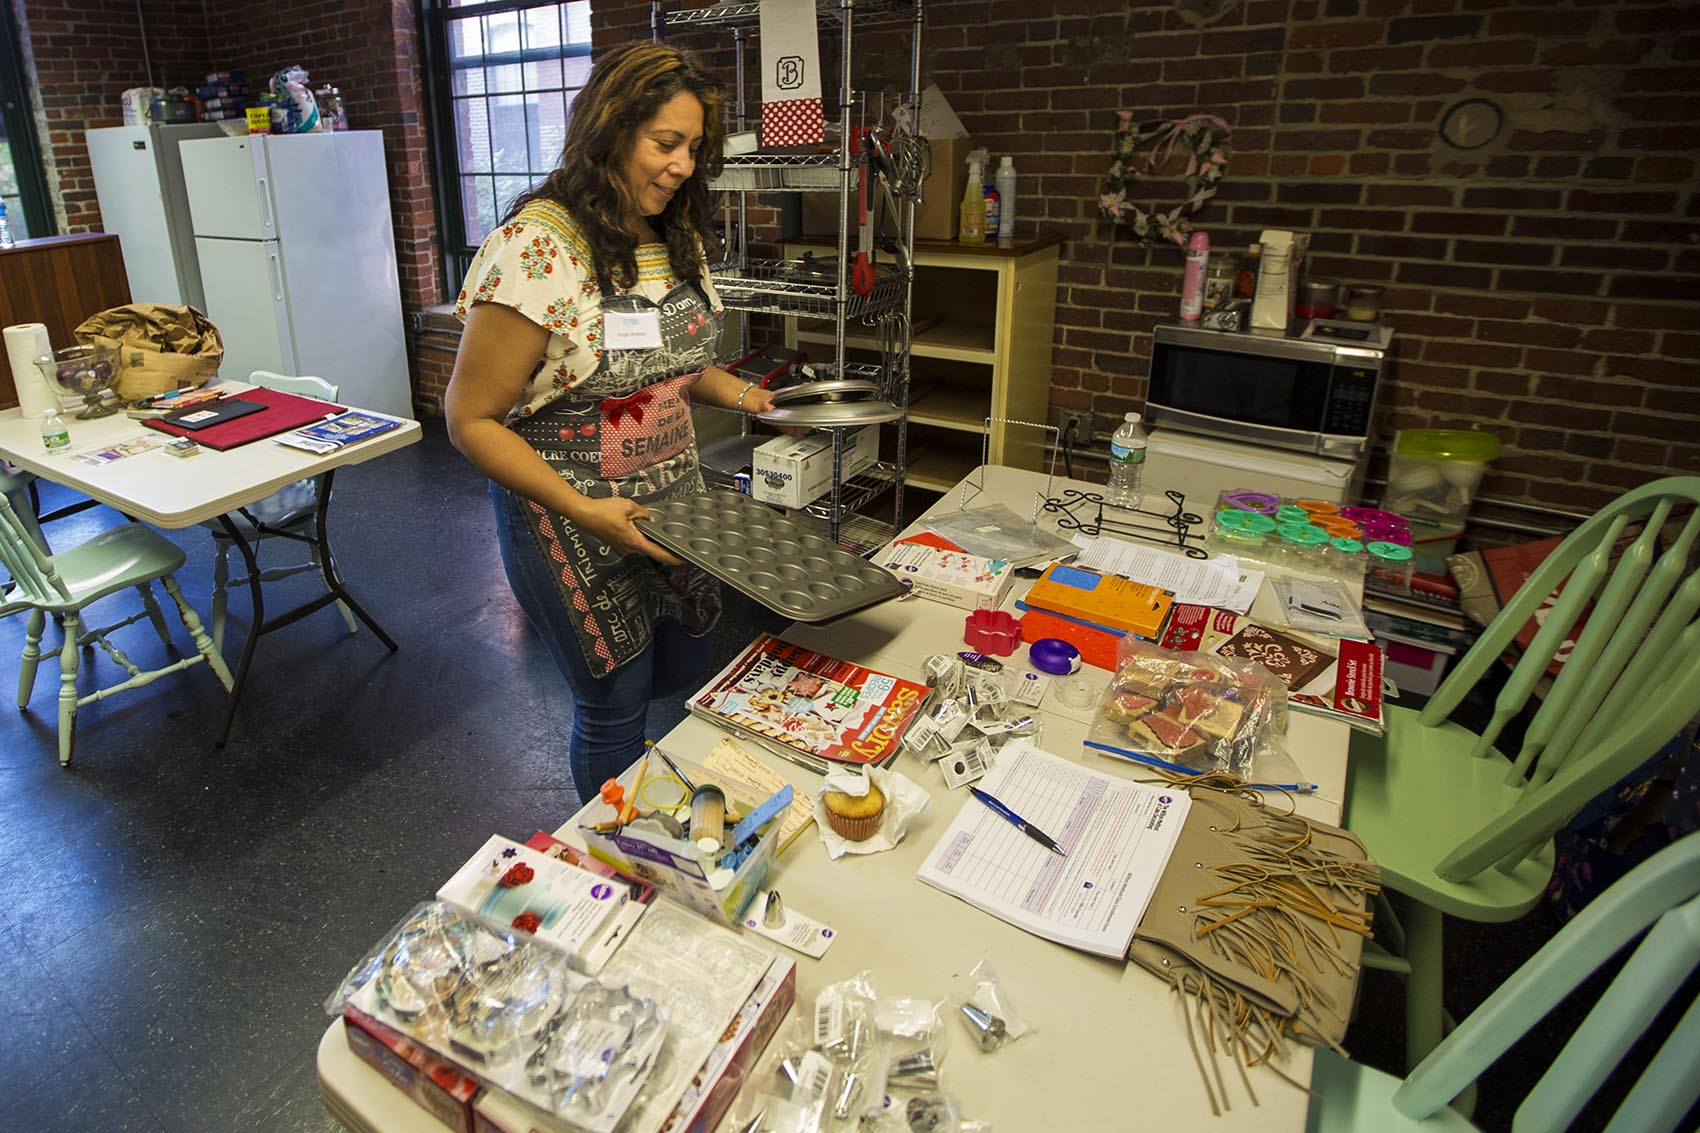 Angie Jimenez is a graduate of Entrepreneurship for All, a business accelerator program in Lawrence. She's starting a cooking school in a renovated mill building in the city. (Jesse Costa/WBUR)